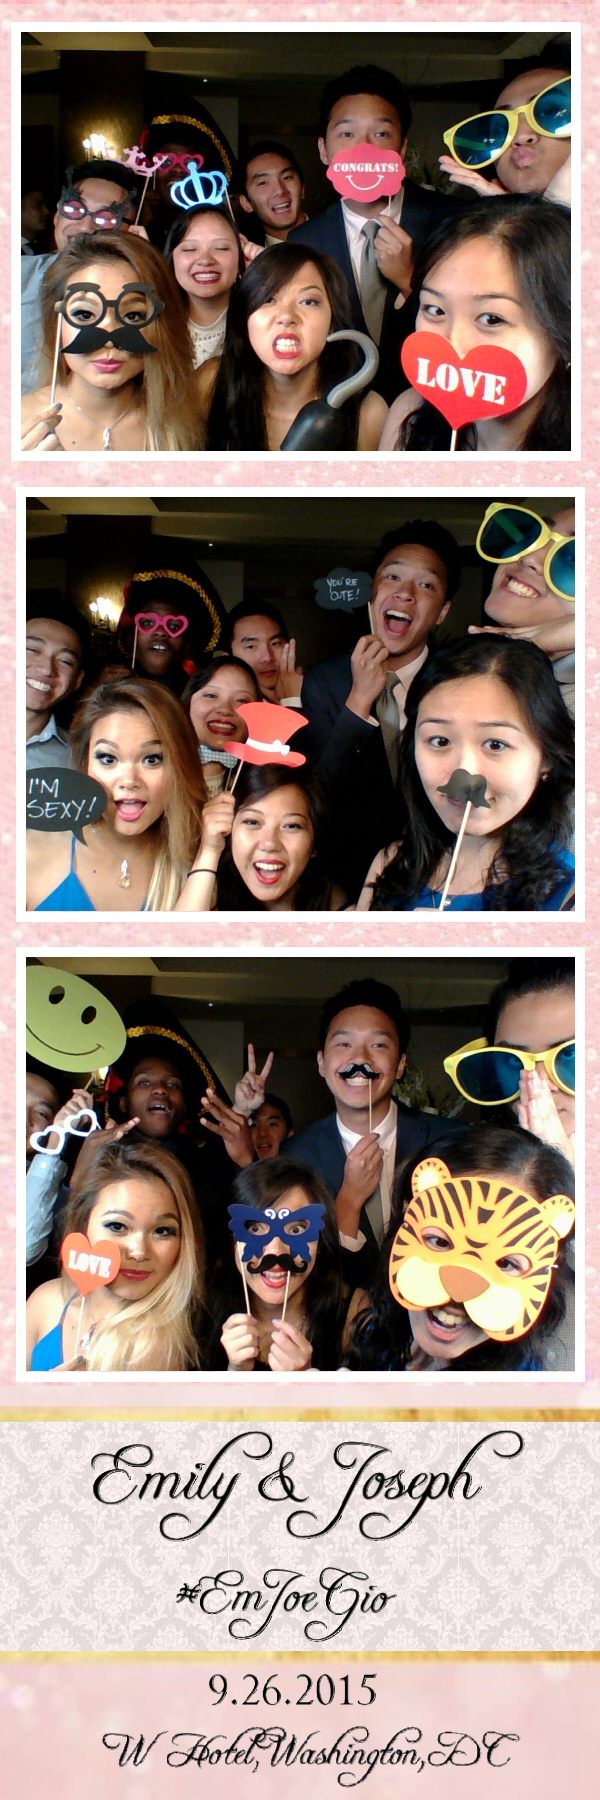 Guest House Events Photo Booth E&J (60).jpg